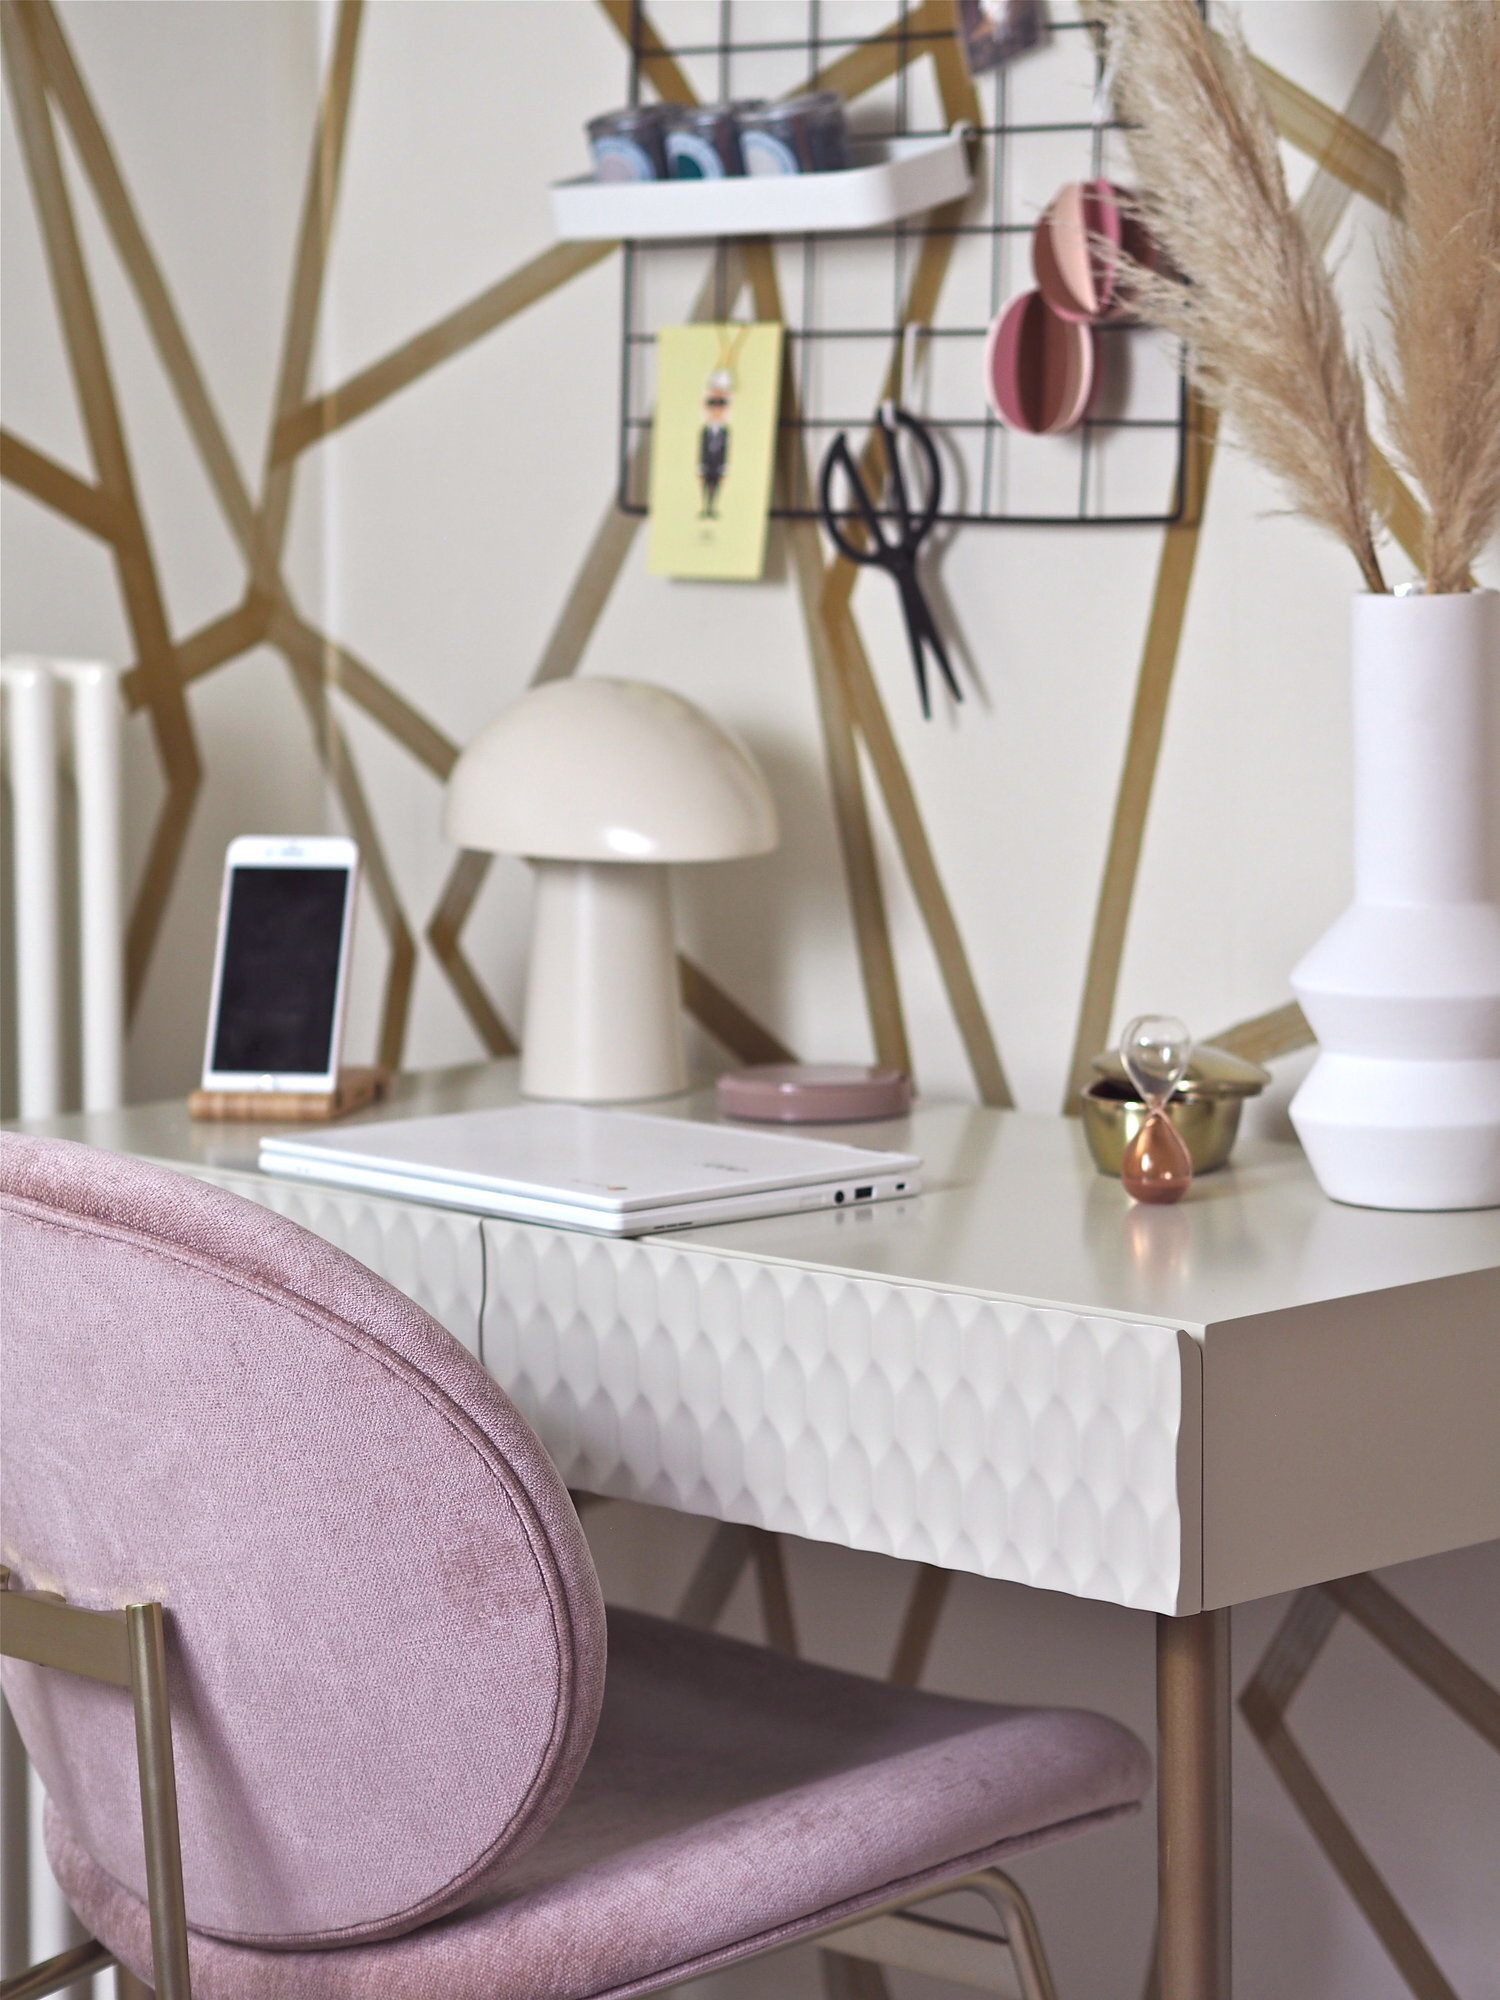 - Working From Home: 5 Compact Desk Designs For Small Spaces